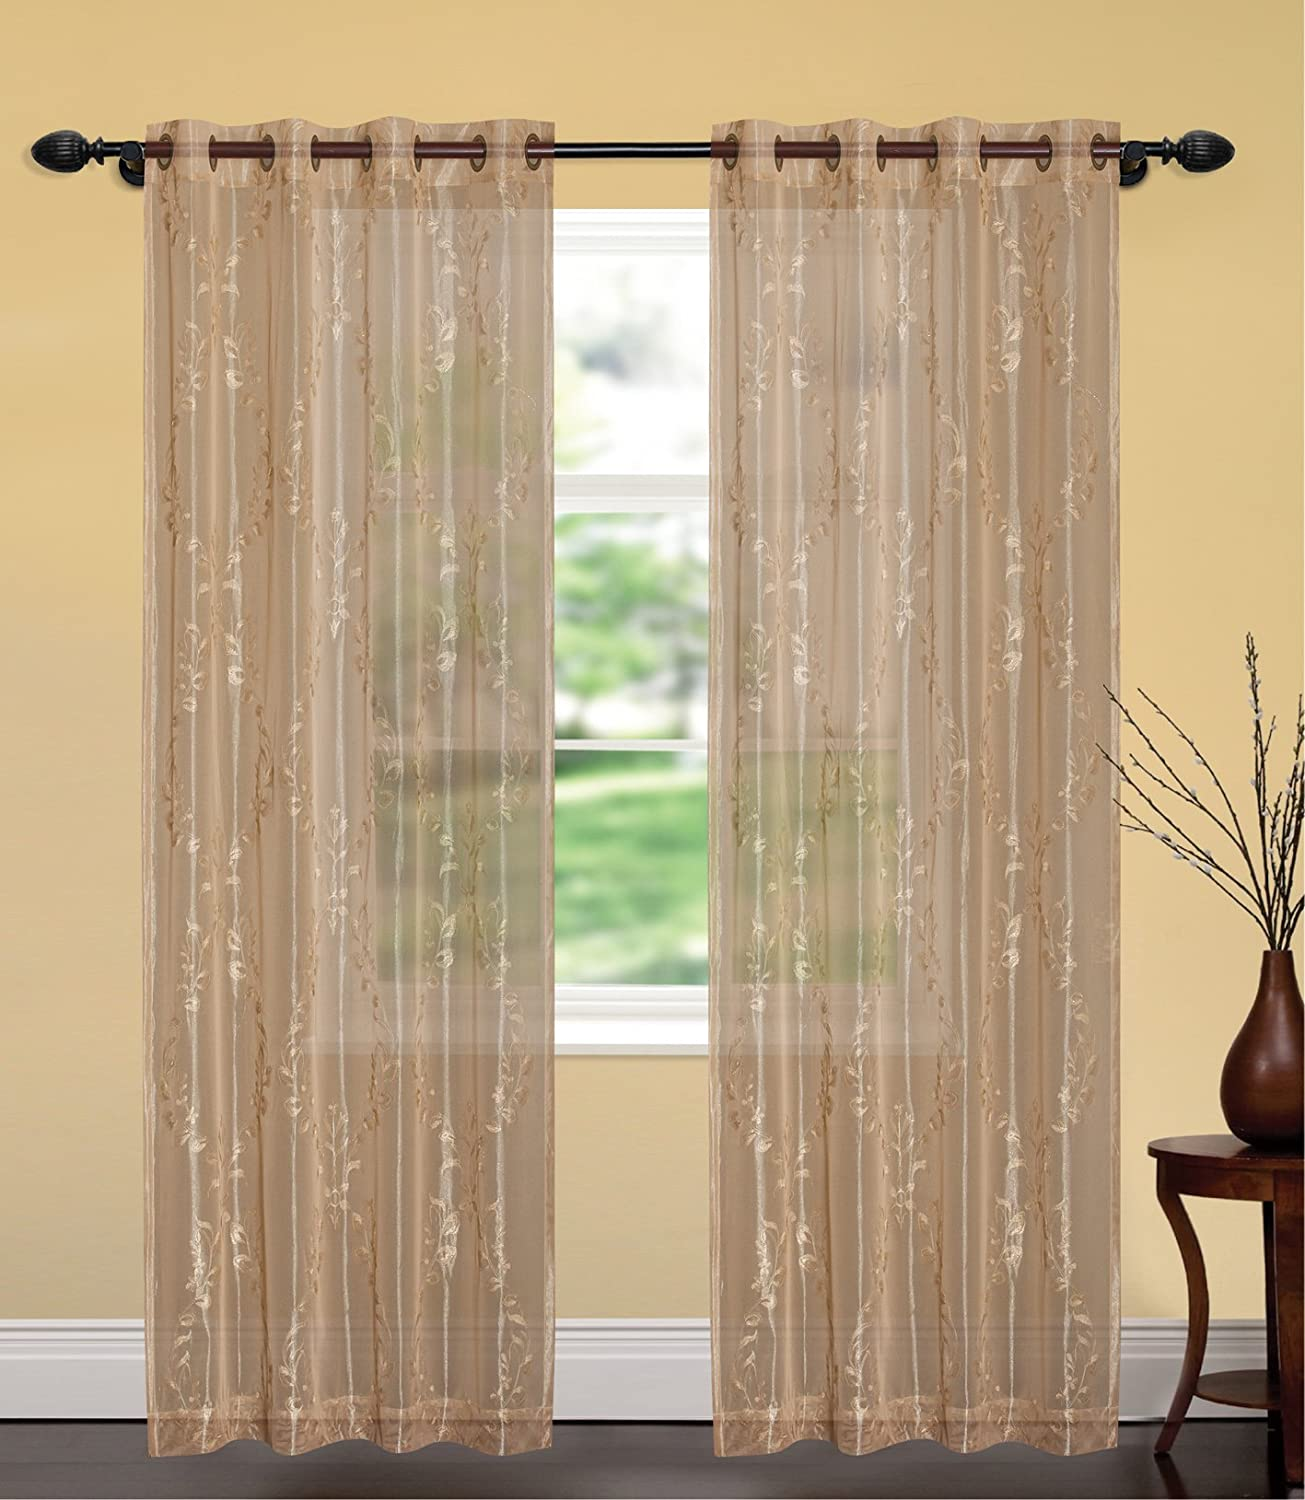 United Linens- Embroidery window curtains Brenda Gold